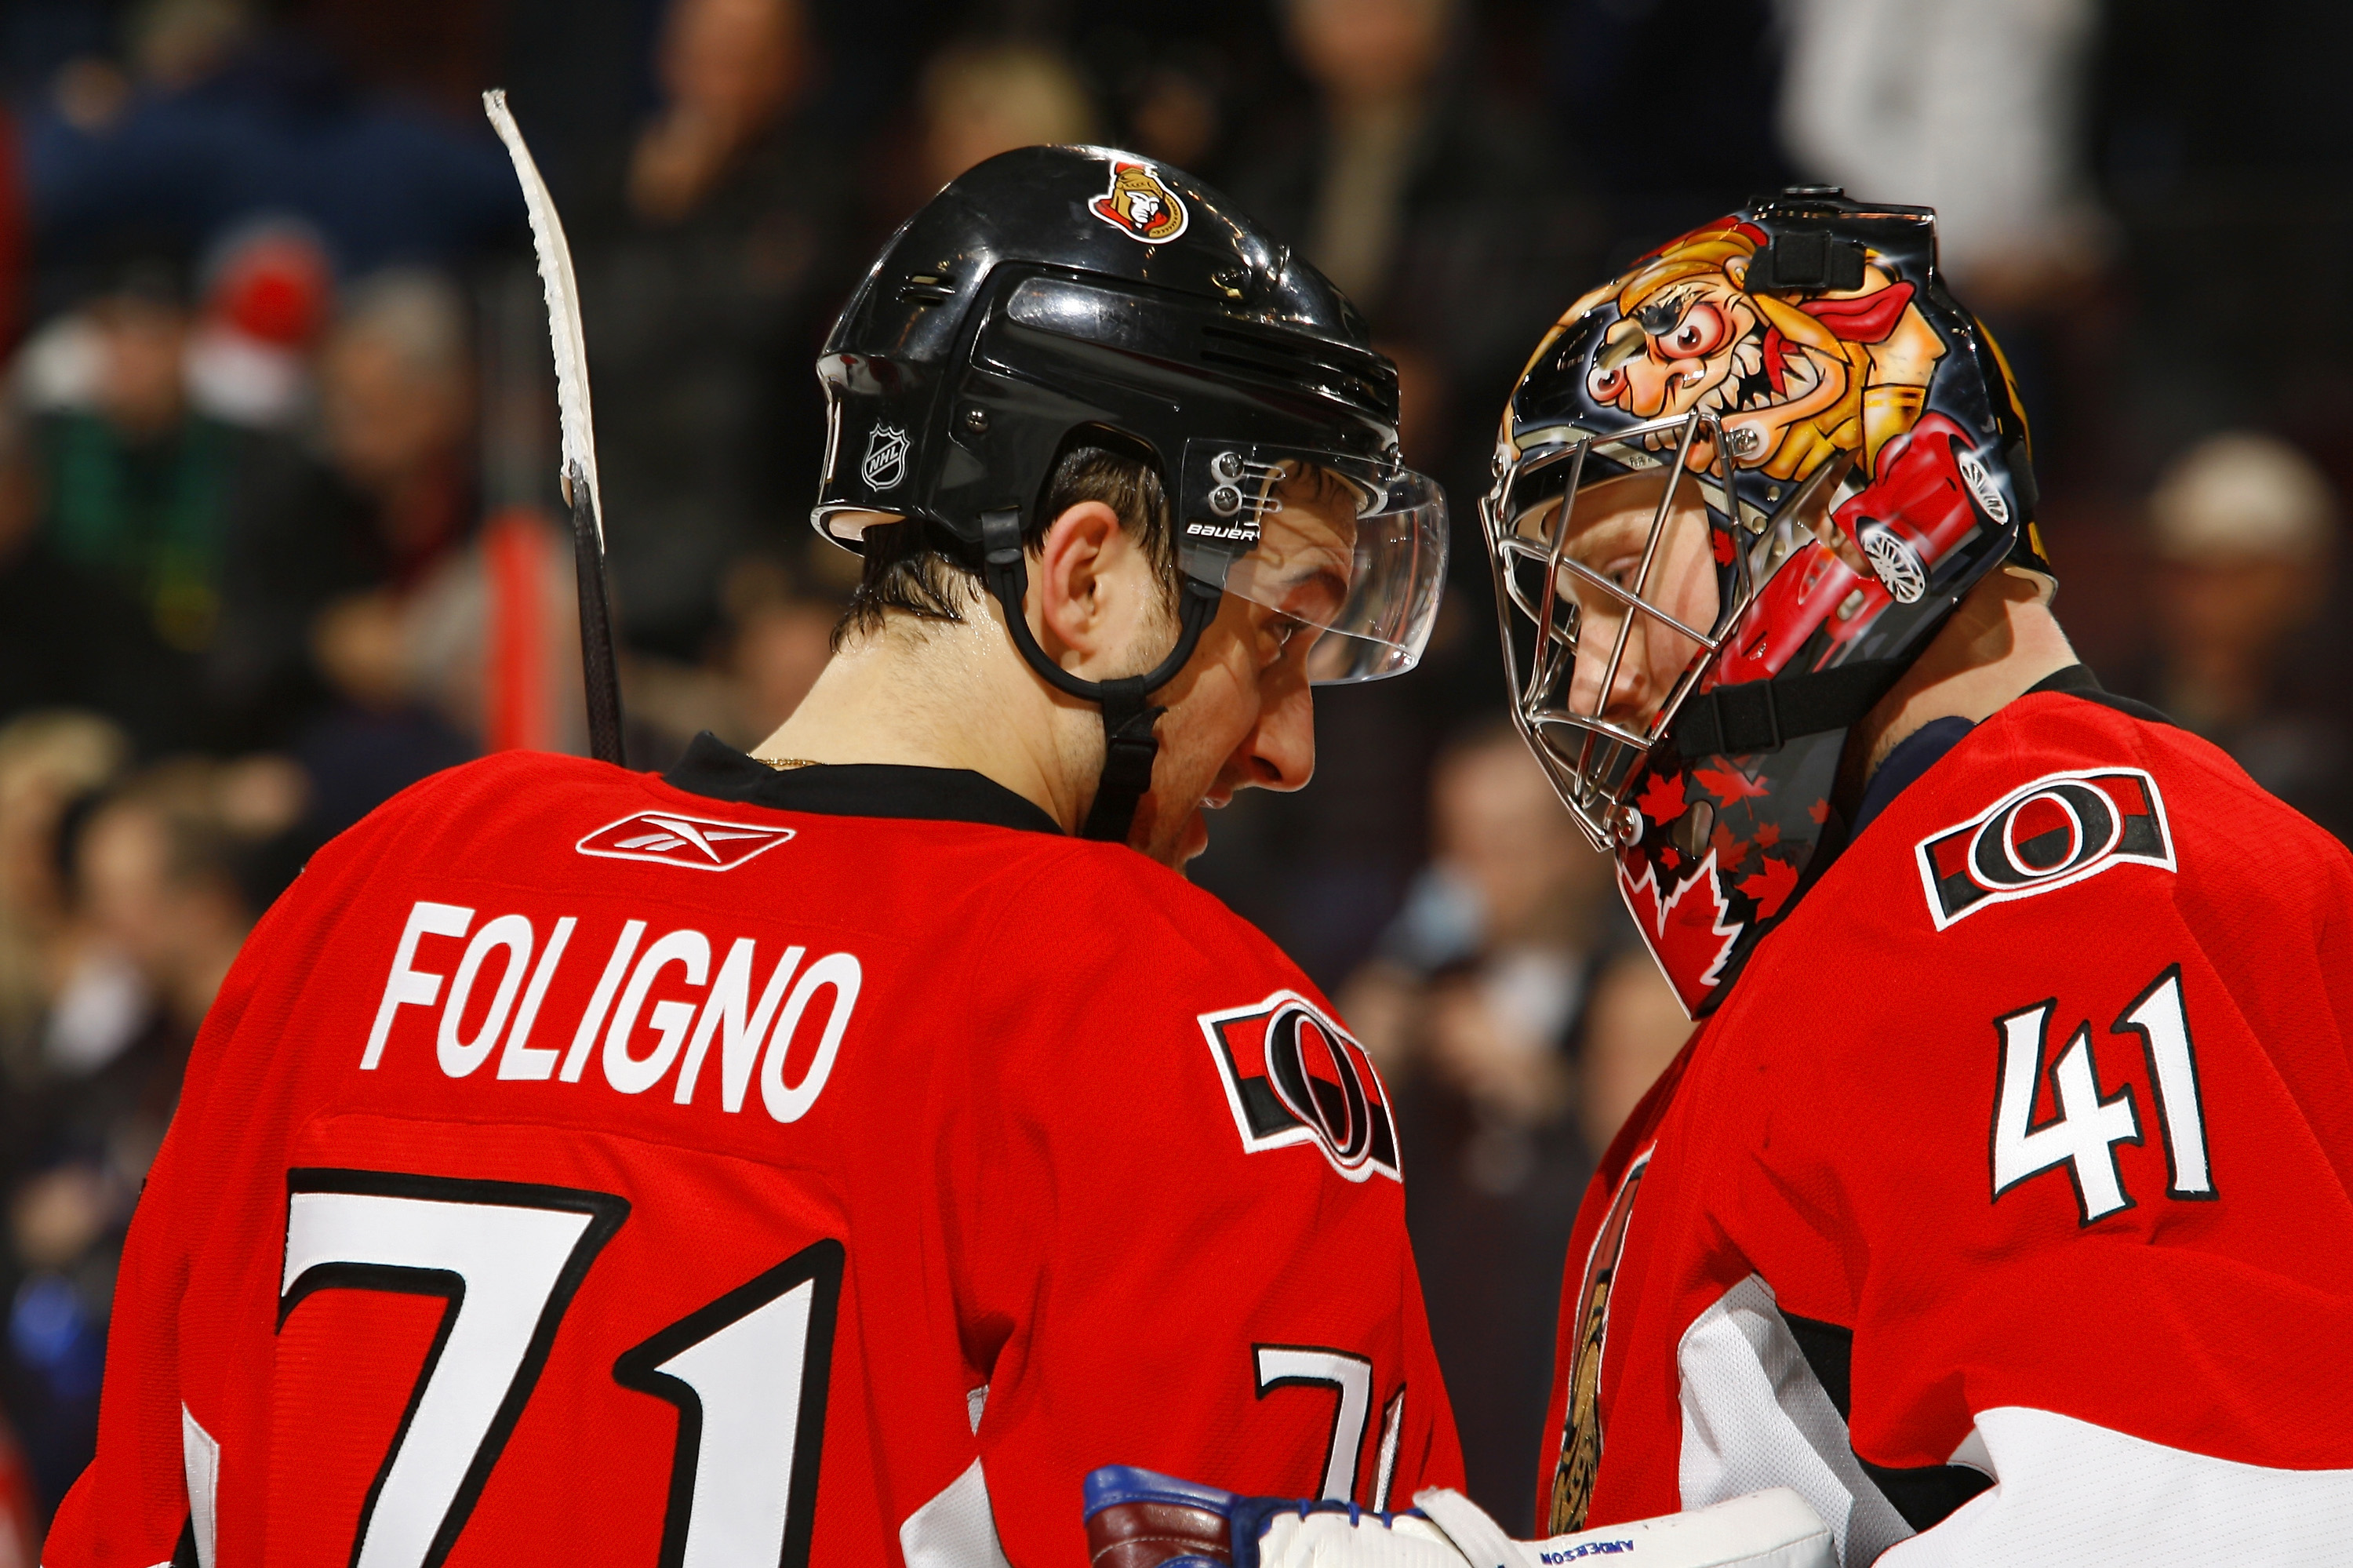 OTTAWA, CANADA - MARCH 25:  Nick Foligno #71 of the Ottawa Senators congratulates teammate Craig Anderson #41 on his shutout victory over the Washington Capitals in a game at Scotiabank Place on March 25, 2011 in Ottawa, Canada.  (Photo by Phillip MacCall